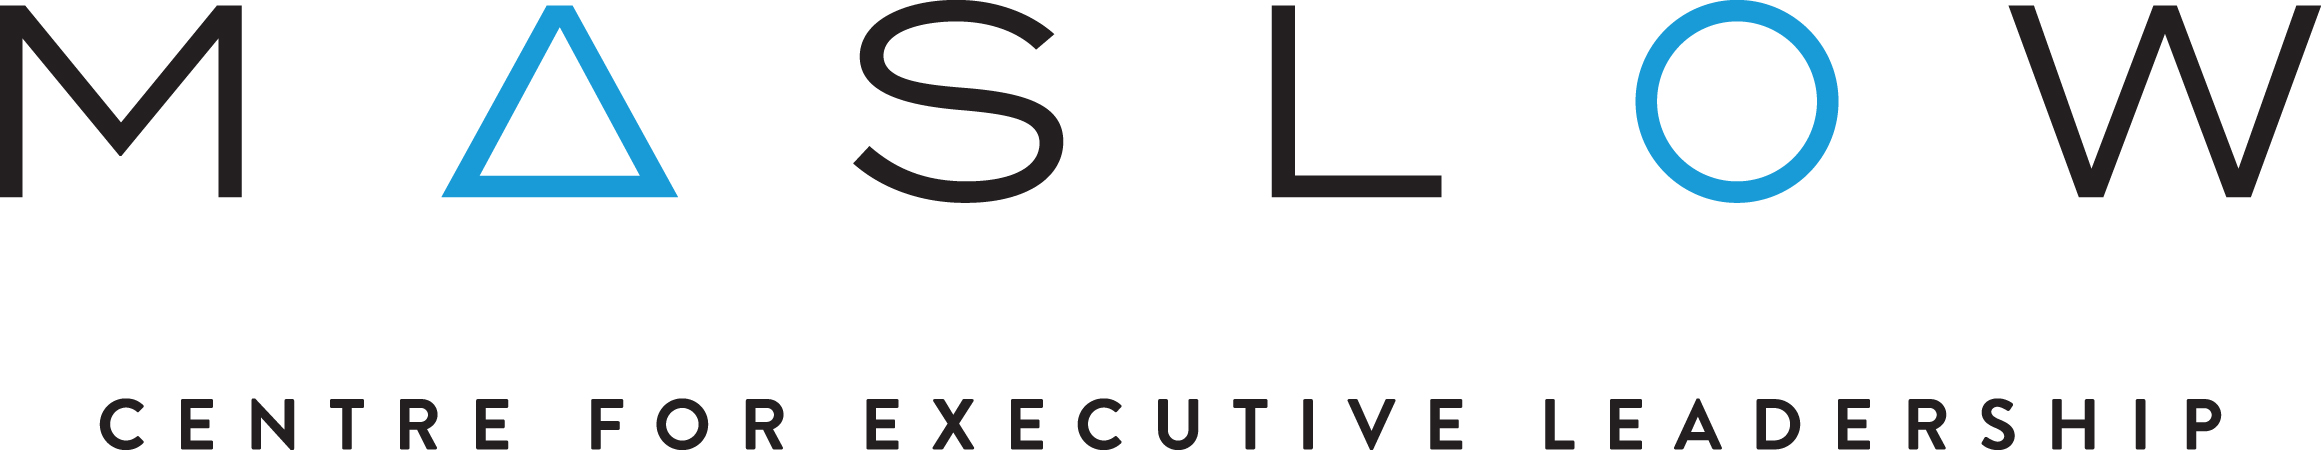 Maslow Centre for Executive Leadership